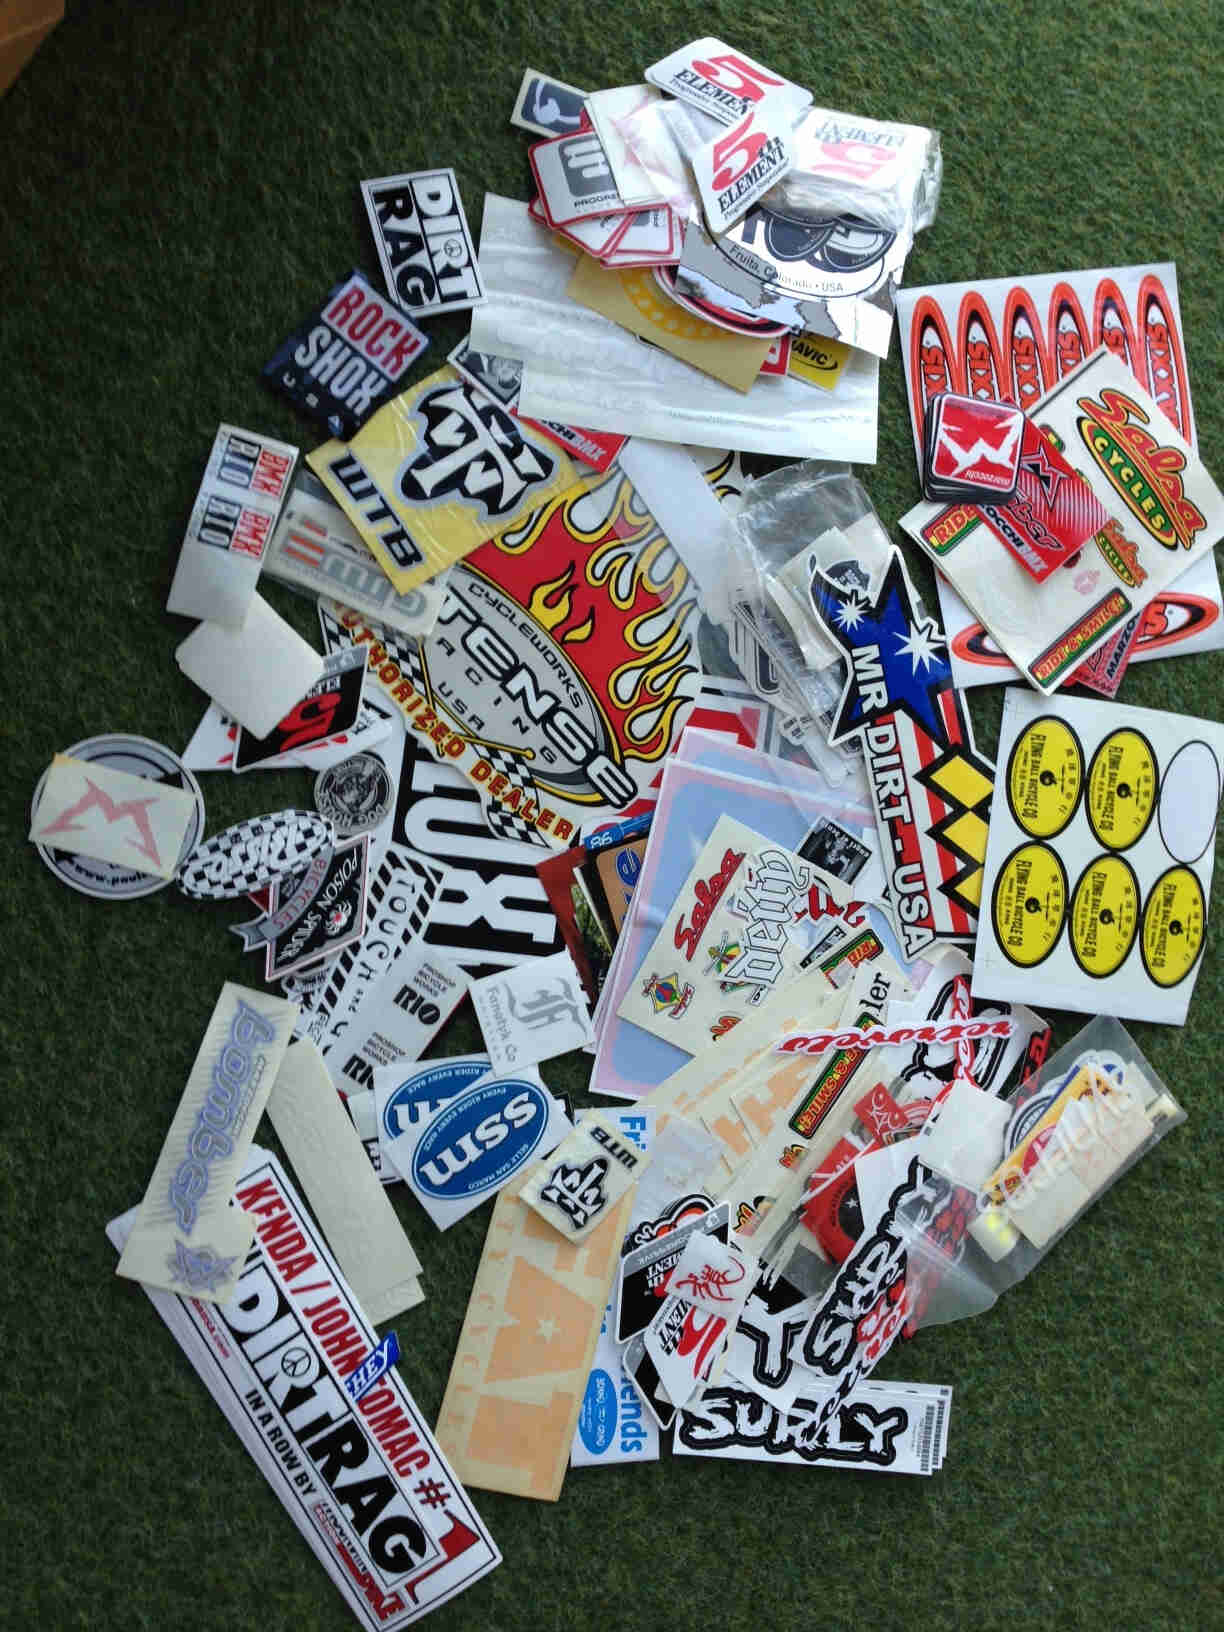 A collection of stickers, scattered on laying flat on each other, on top of a green surface